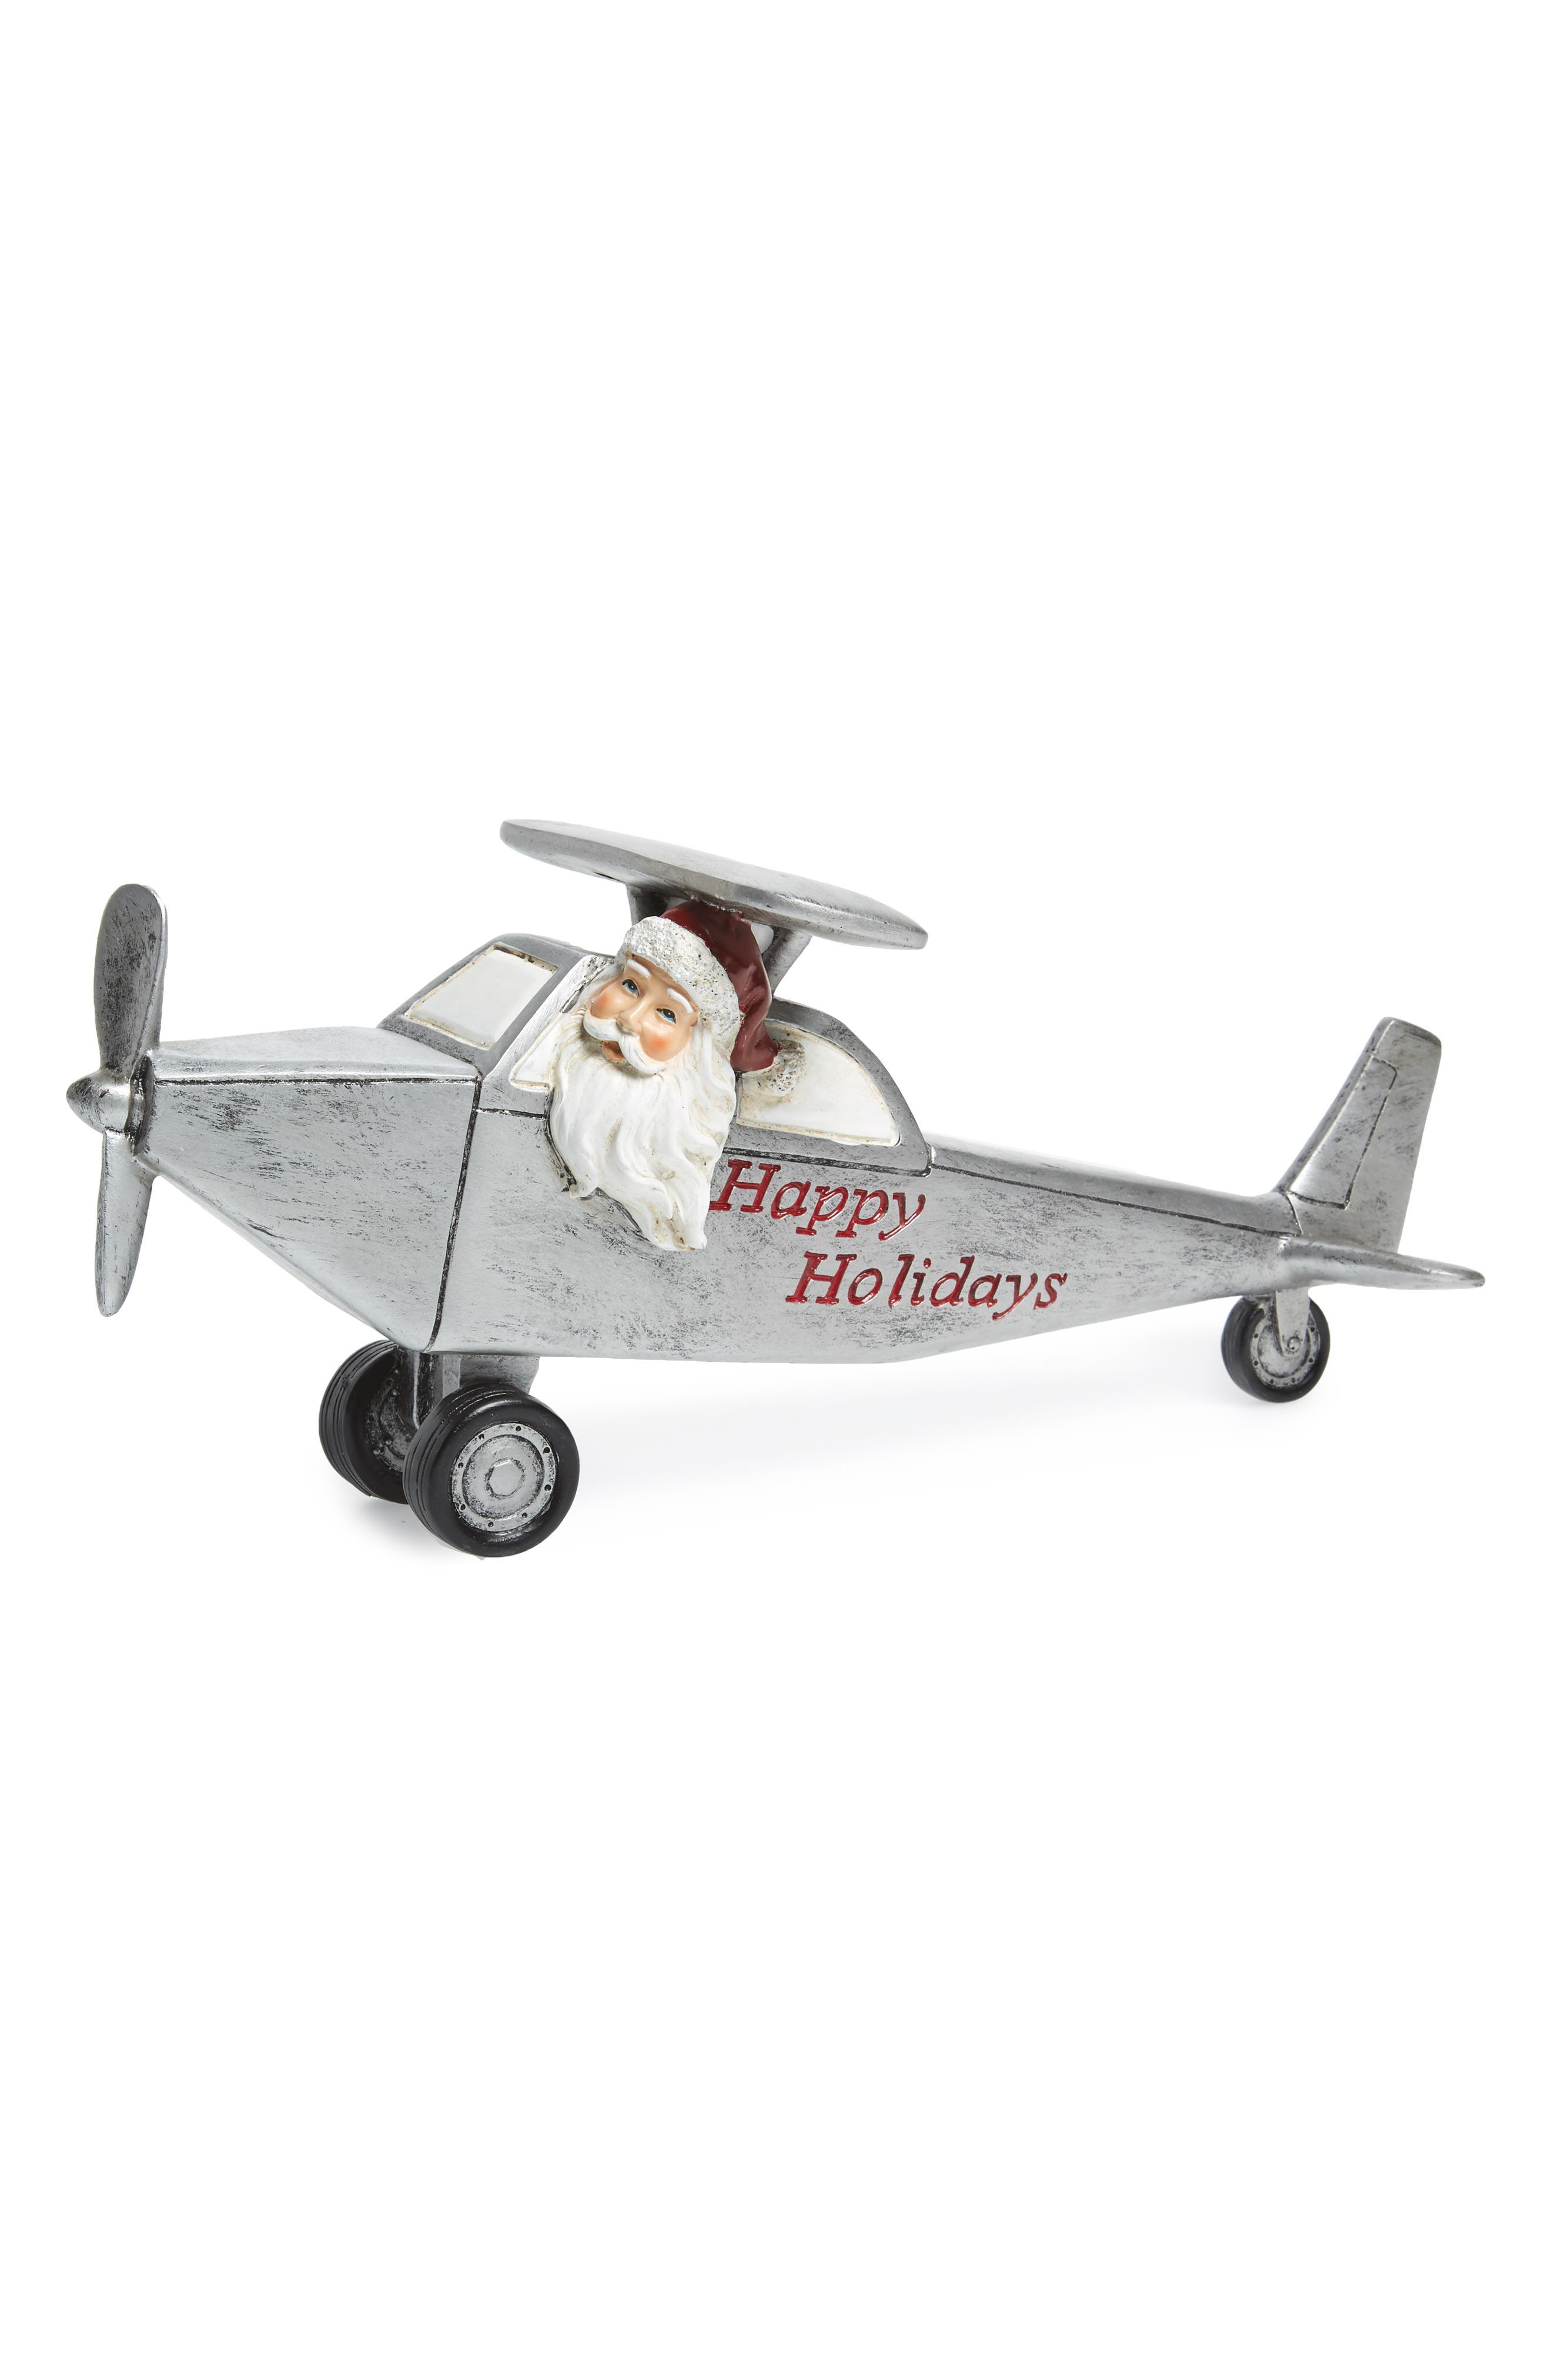 Santa Airplane Ornament,                             Main thumbnail 1, color,                             Silver